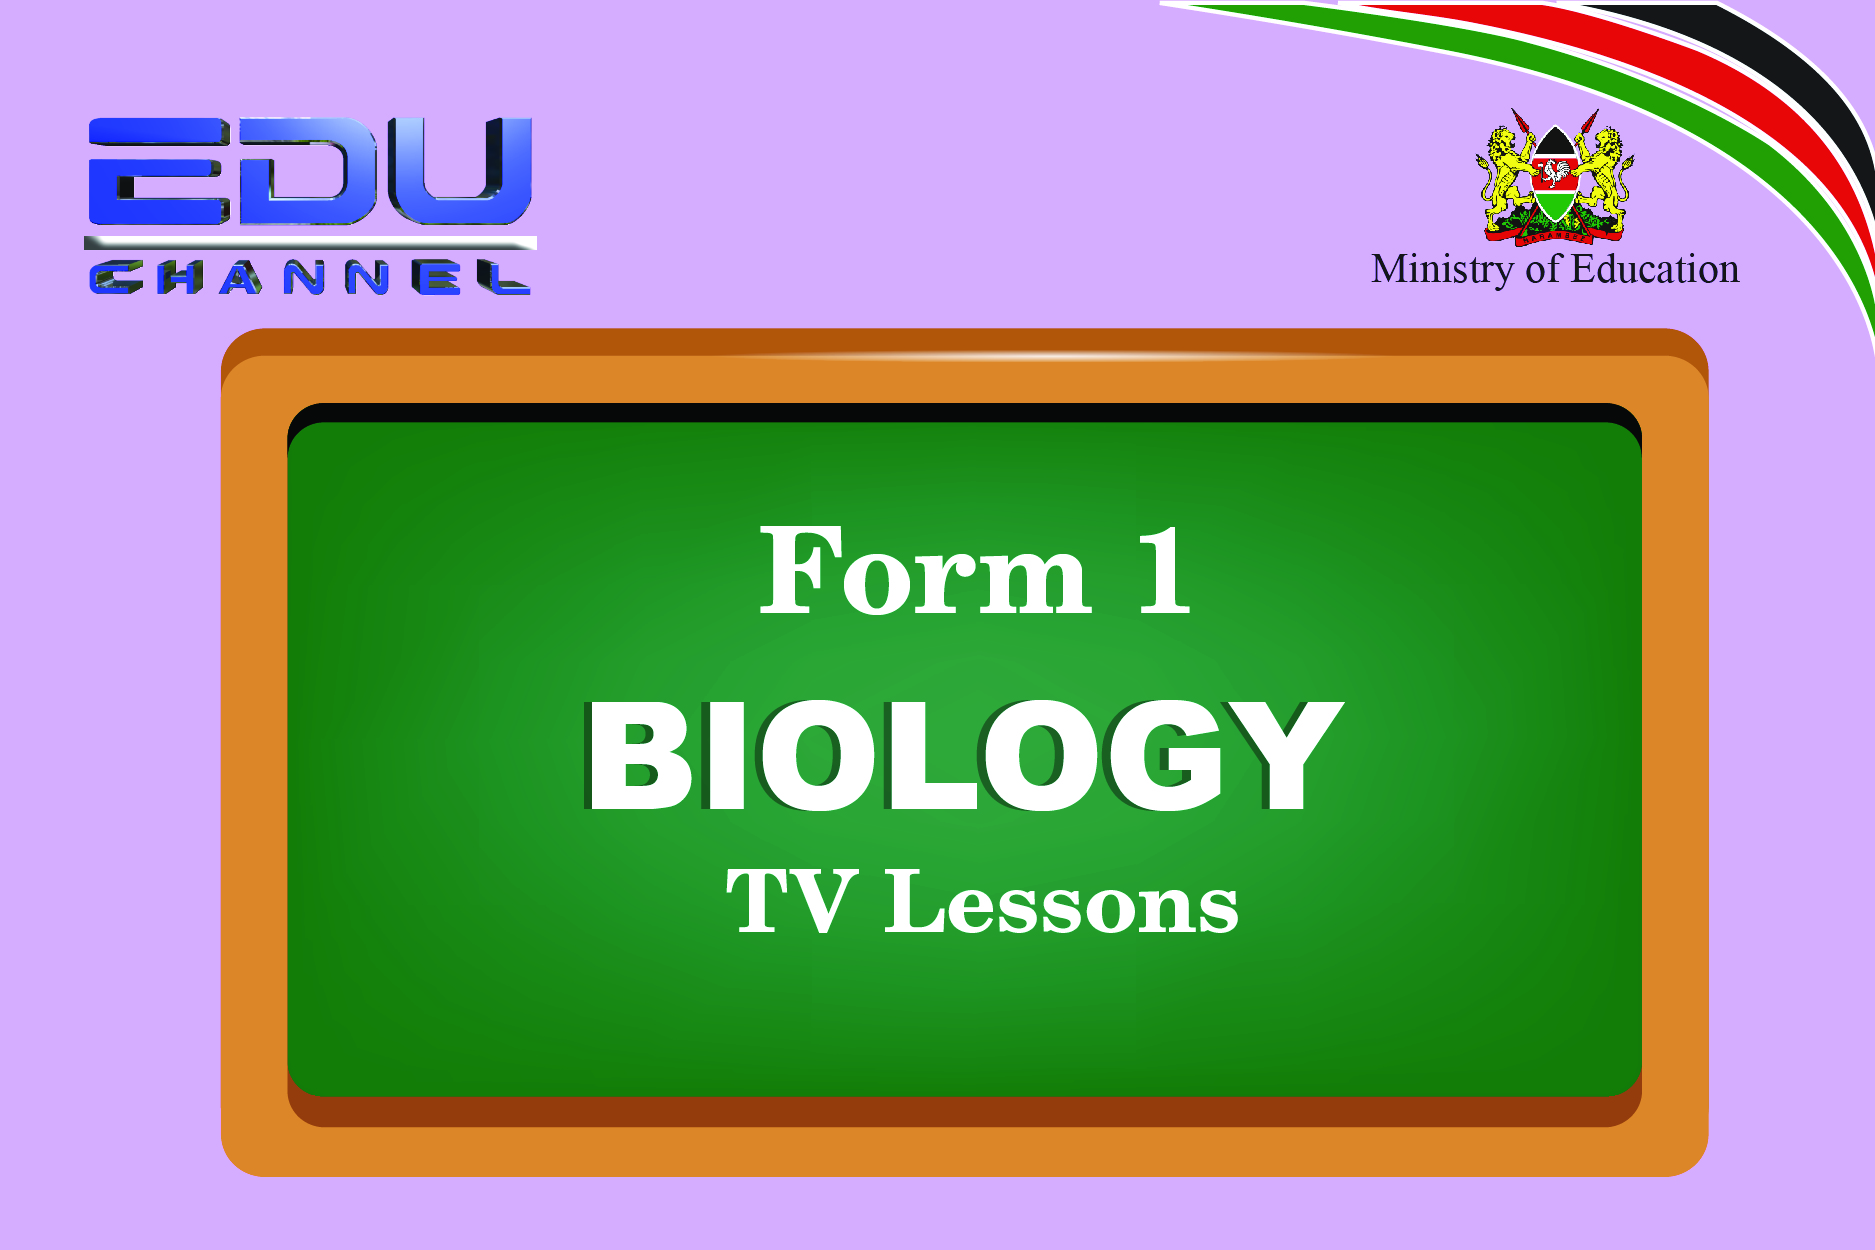 Form 1 Biology Lesson 3: Classification Magnifying Lens Significance of Classification